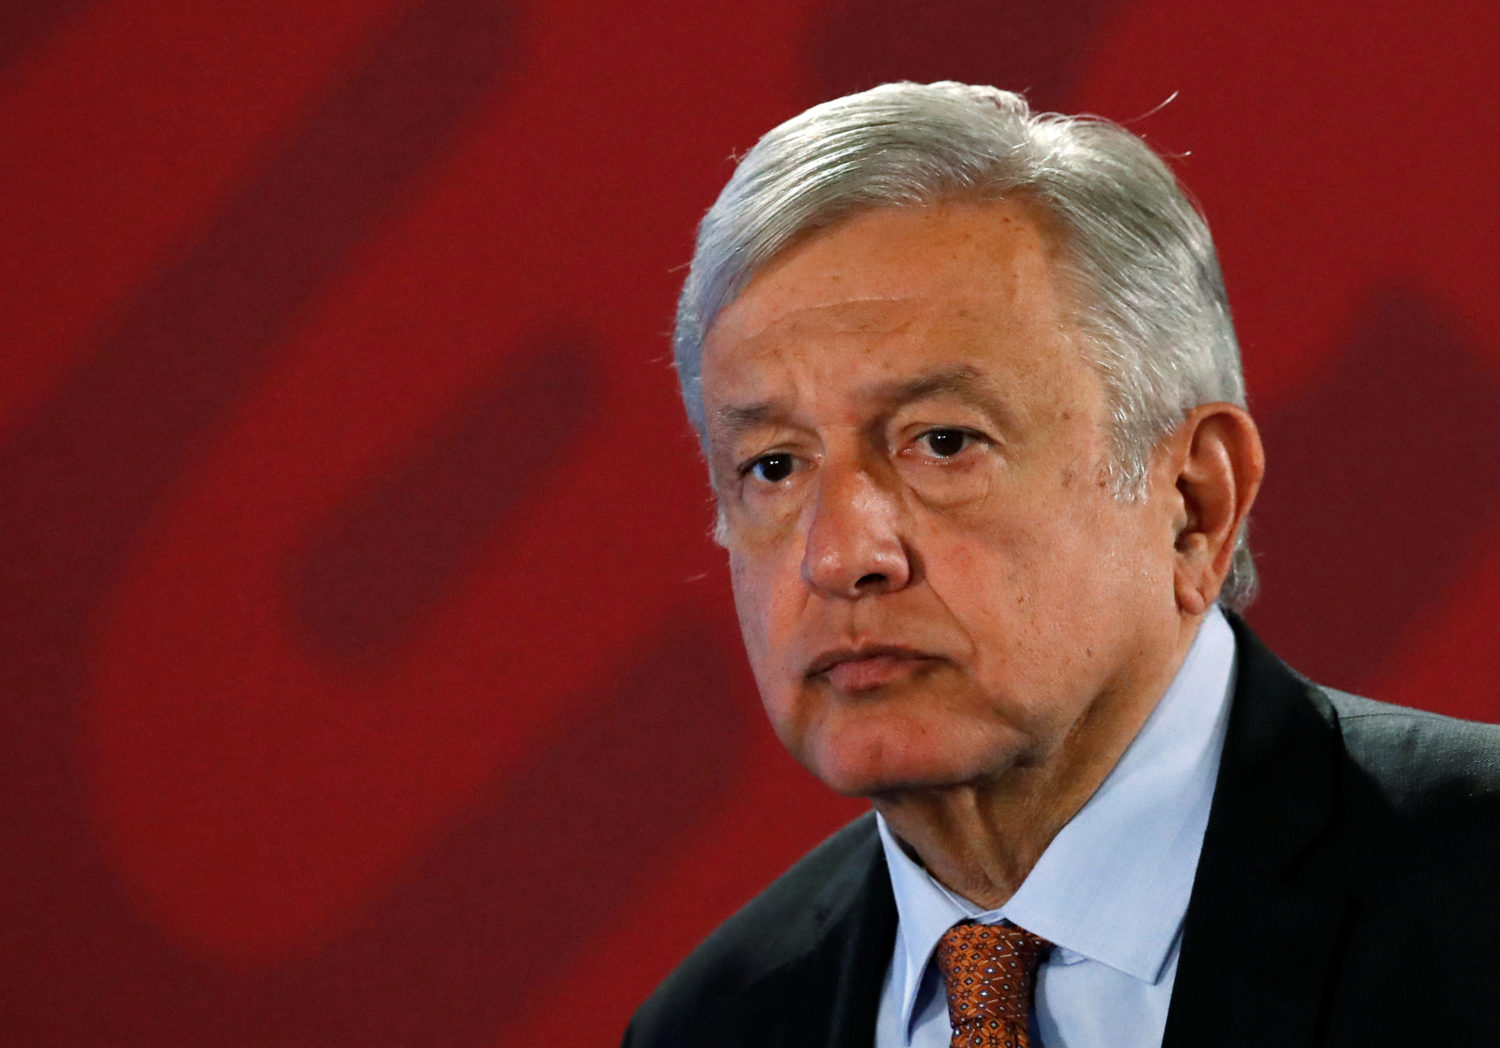 FILE PHOTO: Mexico's President Andres Manuel Lopez Obrador attends a news conference at the National Palace in Mexico City, Mexico August 30, 2019. Picture taken August 30, 2019. REUTERS/Henry Romero